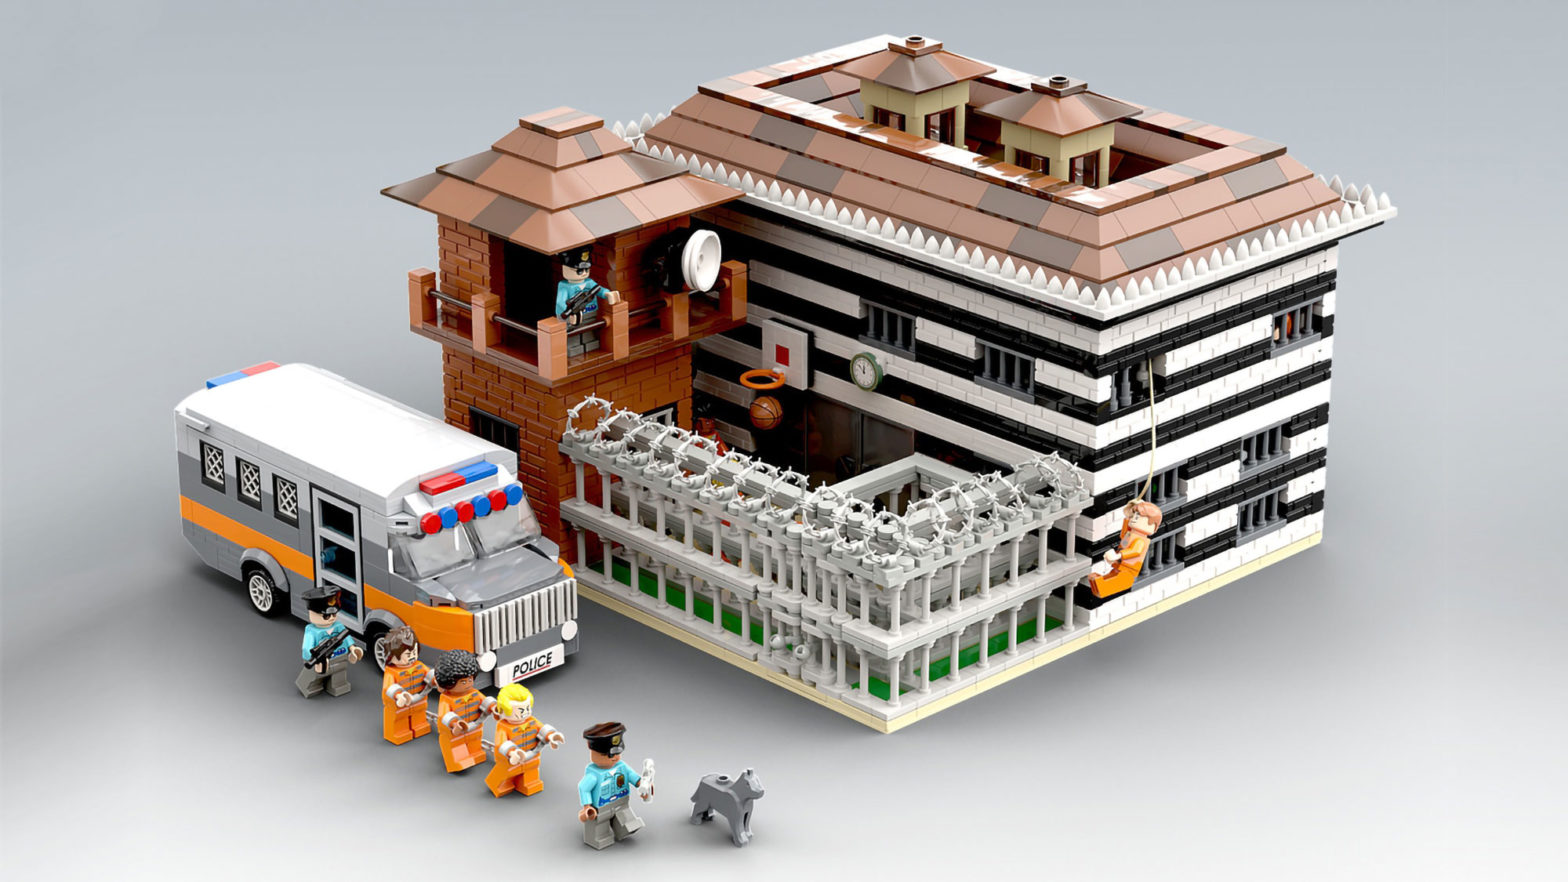 Custom LEGO Maximum Security Prison Set